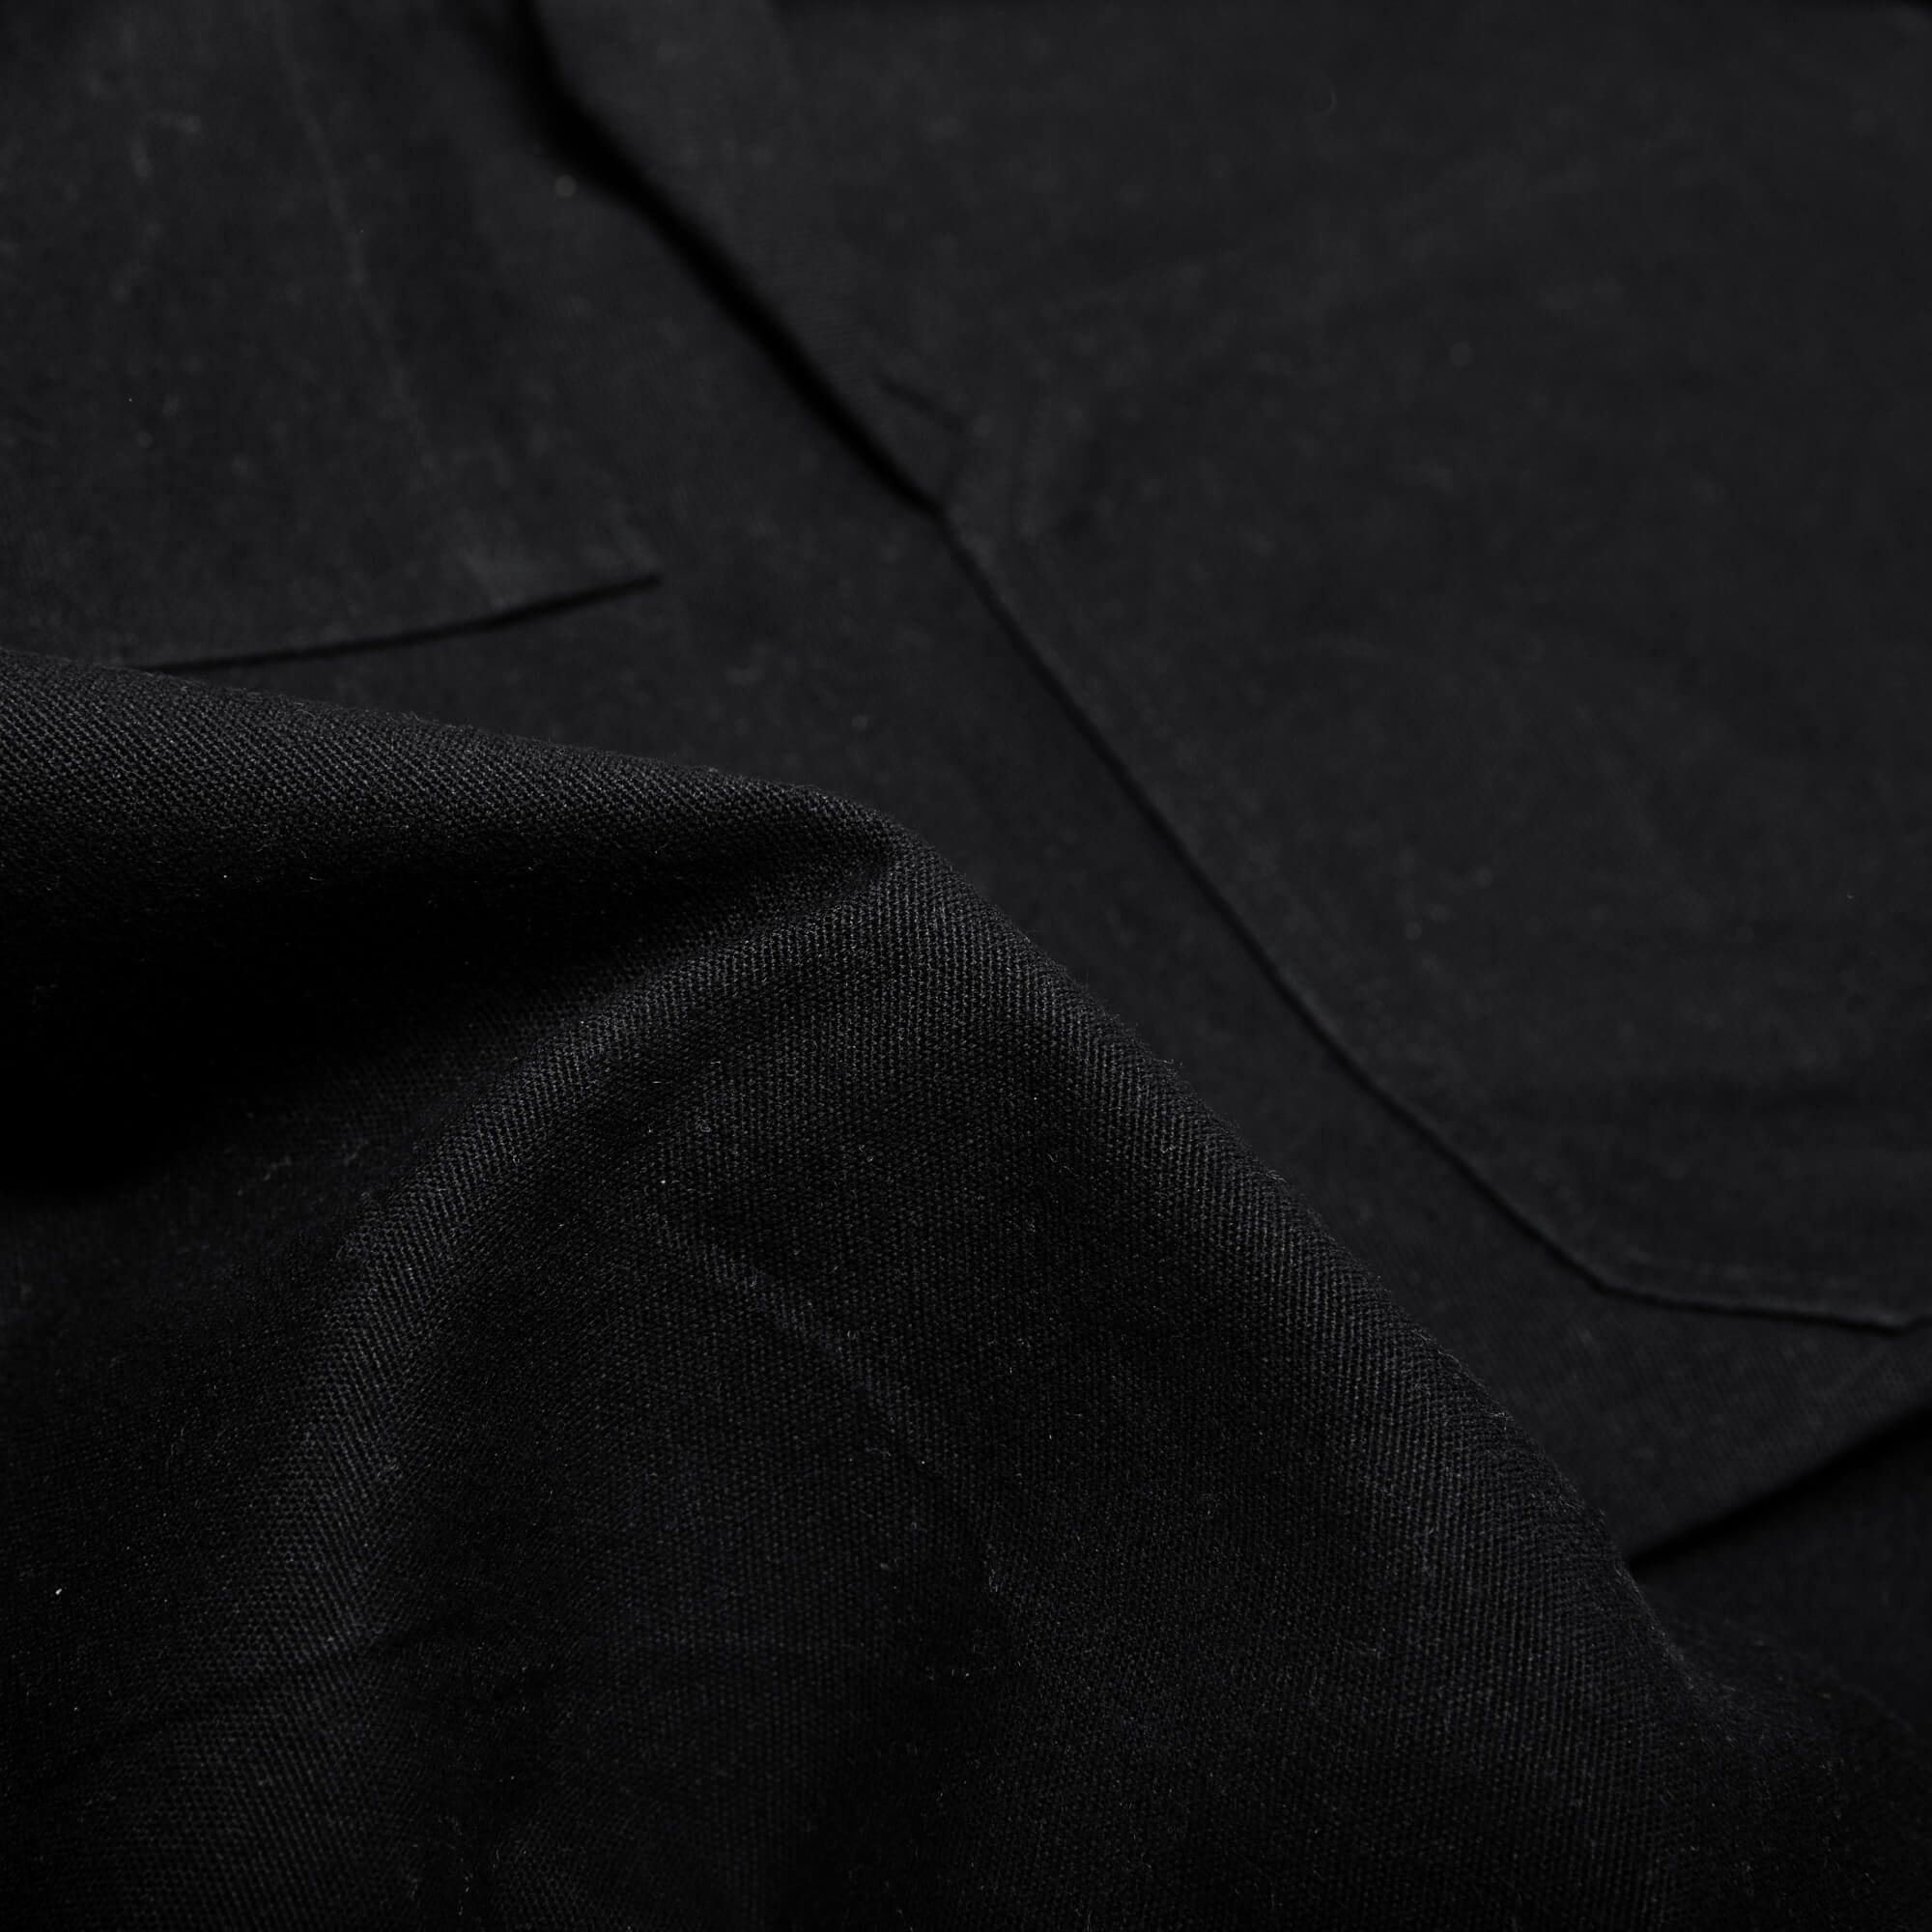 close up of the black fabric for the wood worker pants